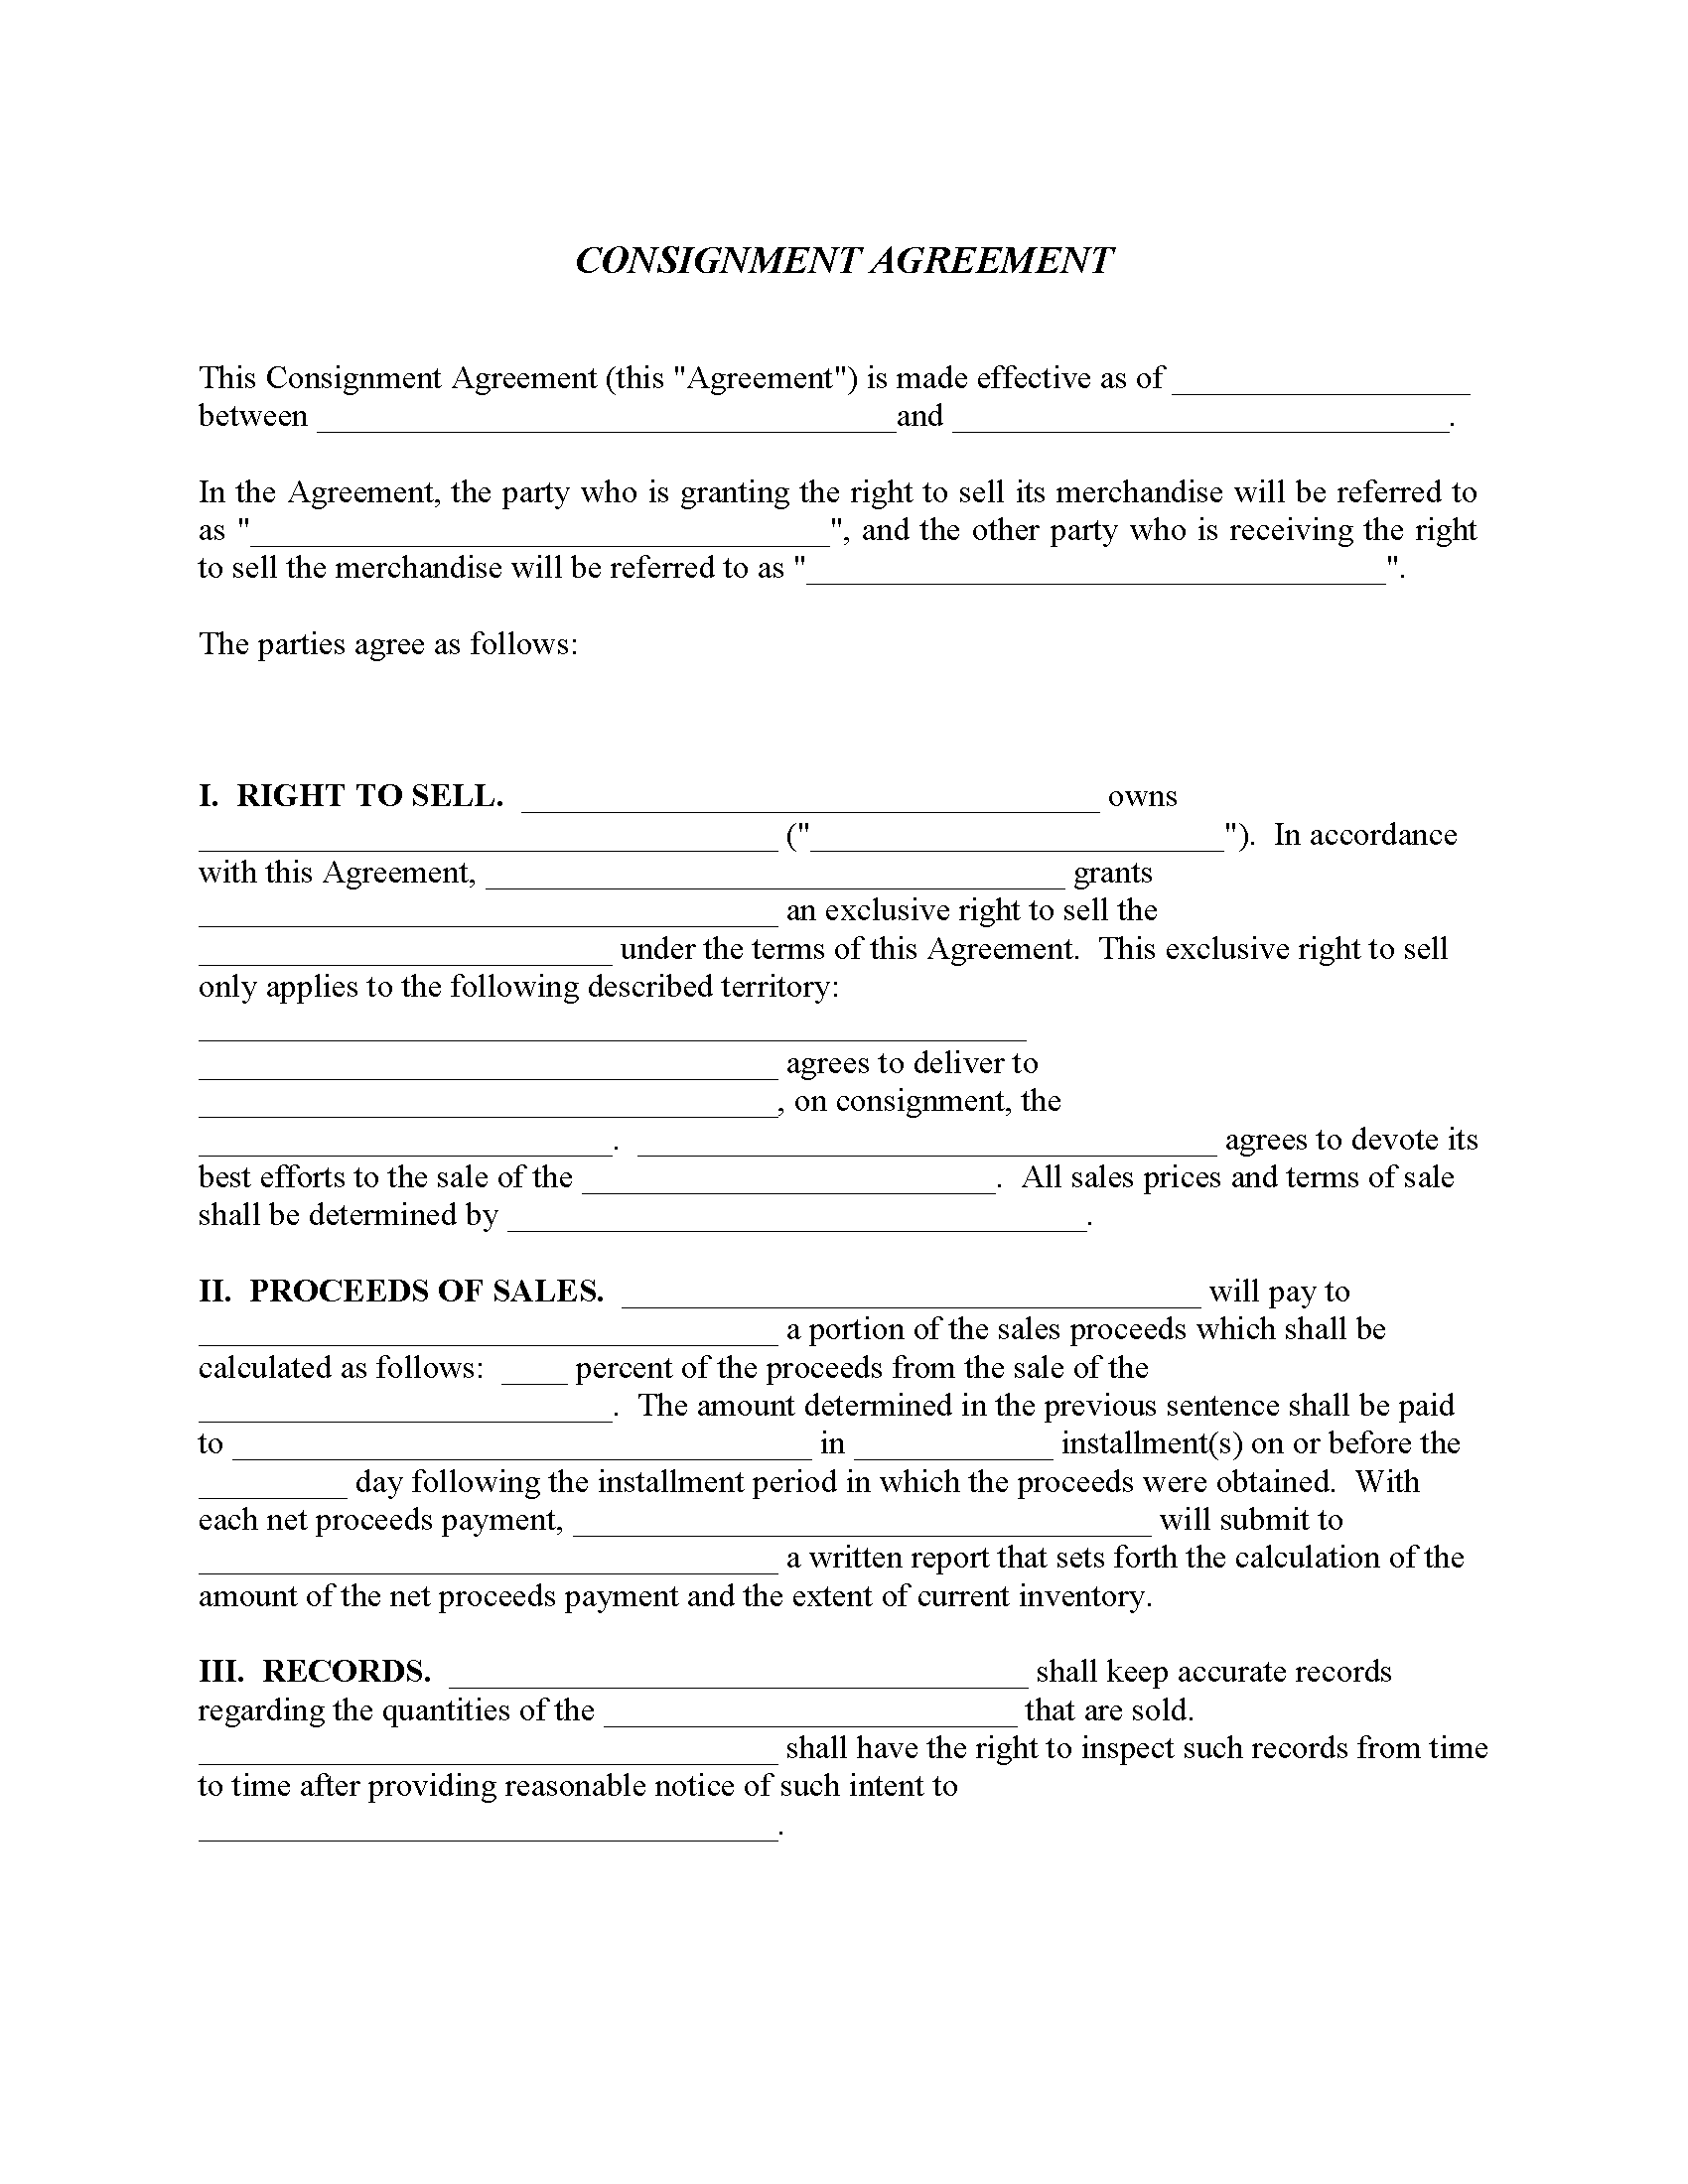 Consignment Agreement Fillable PDF Form